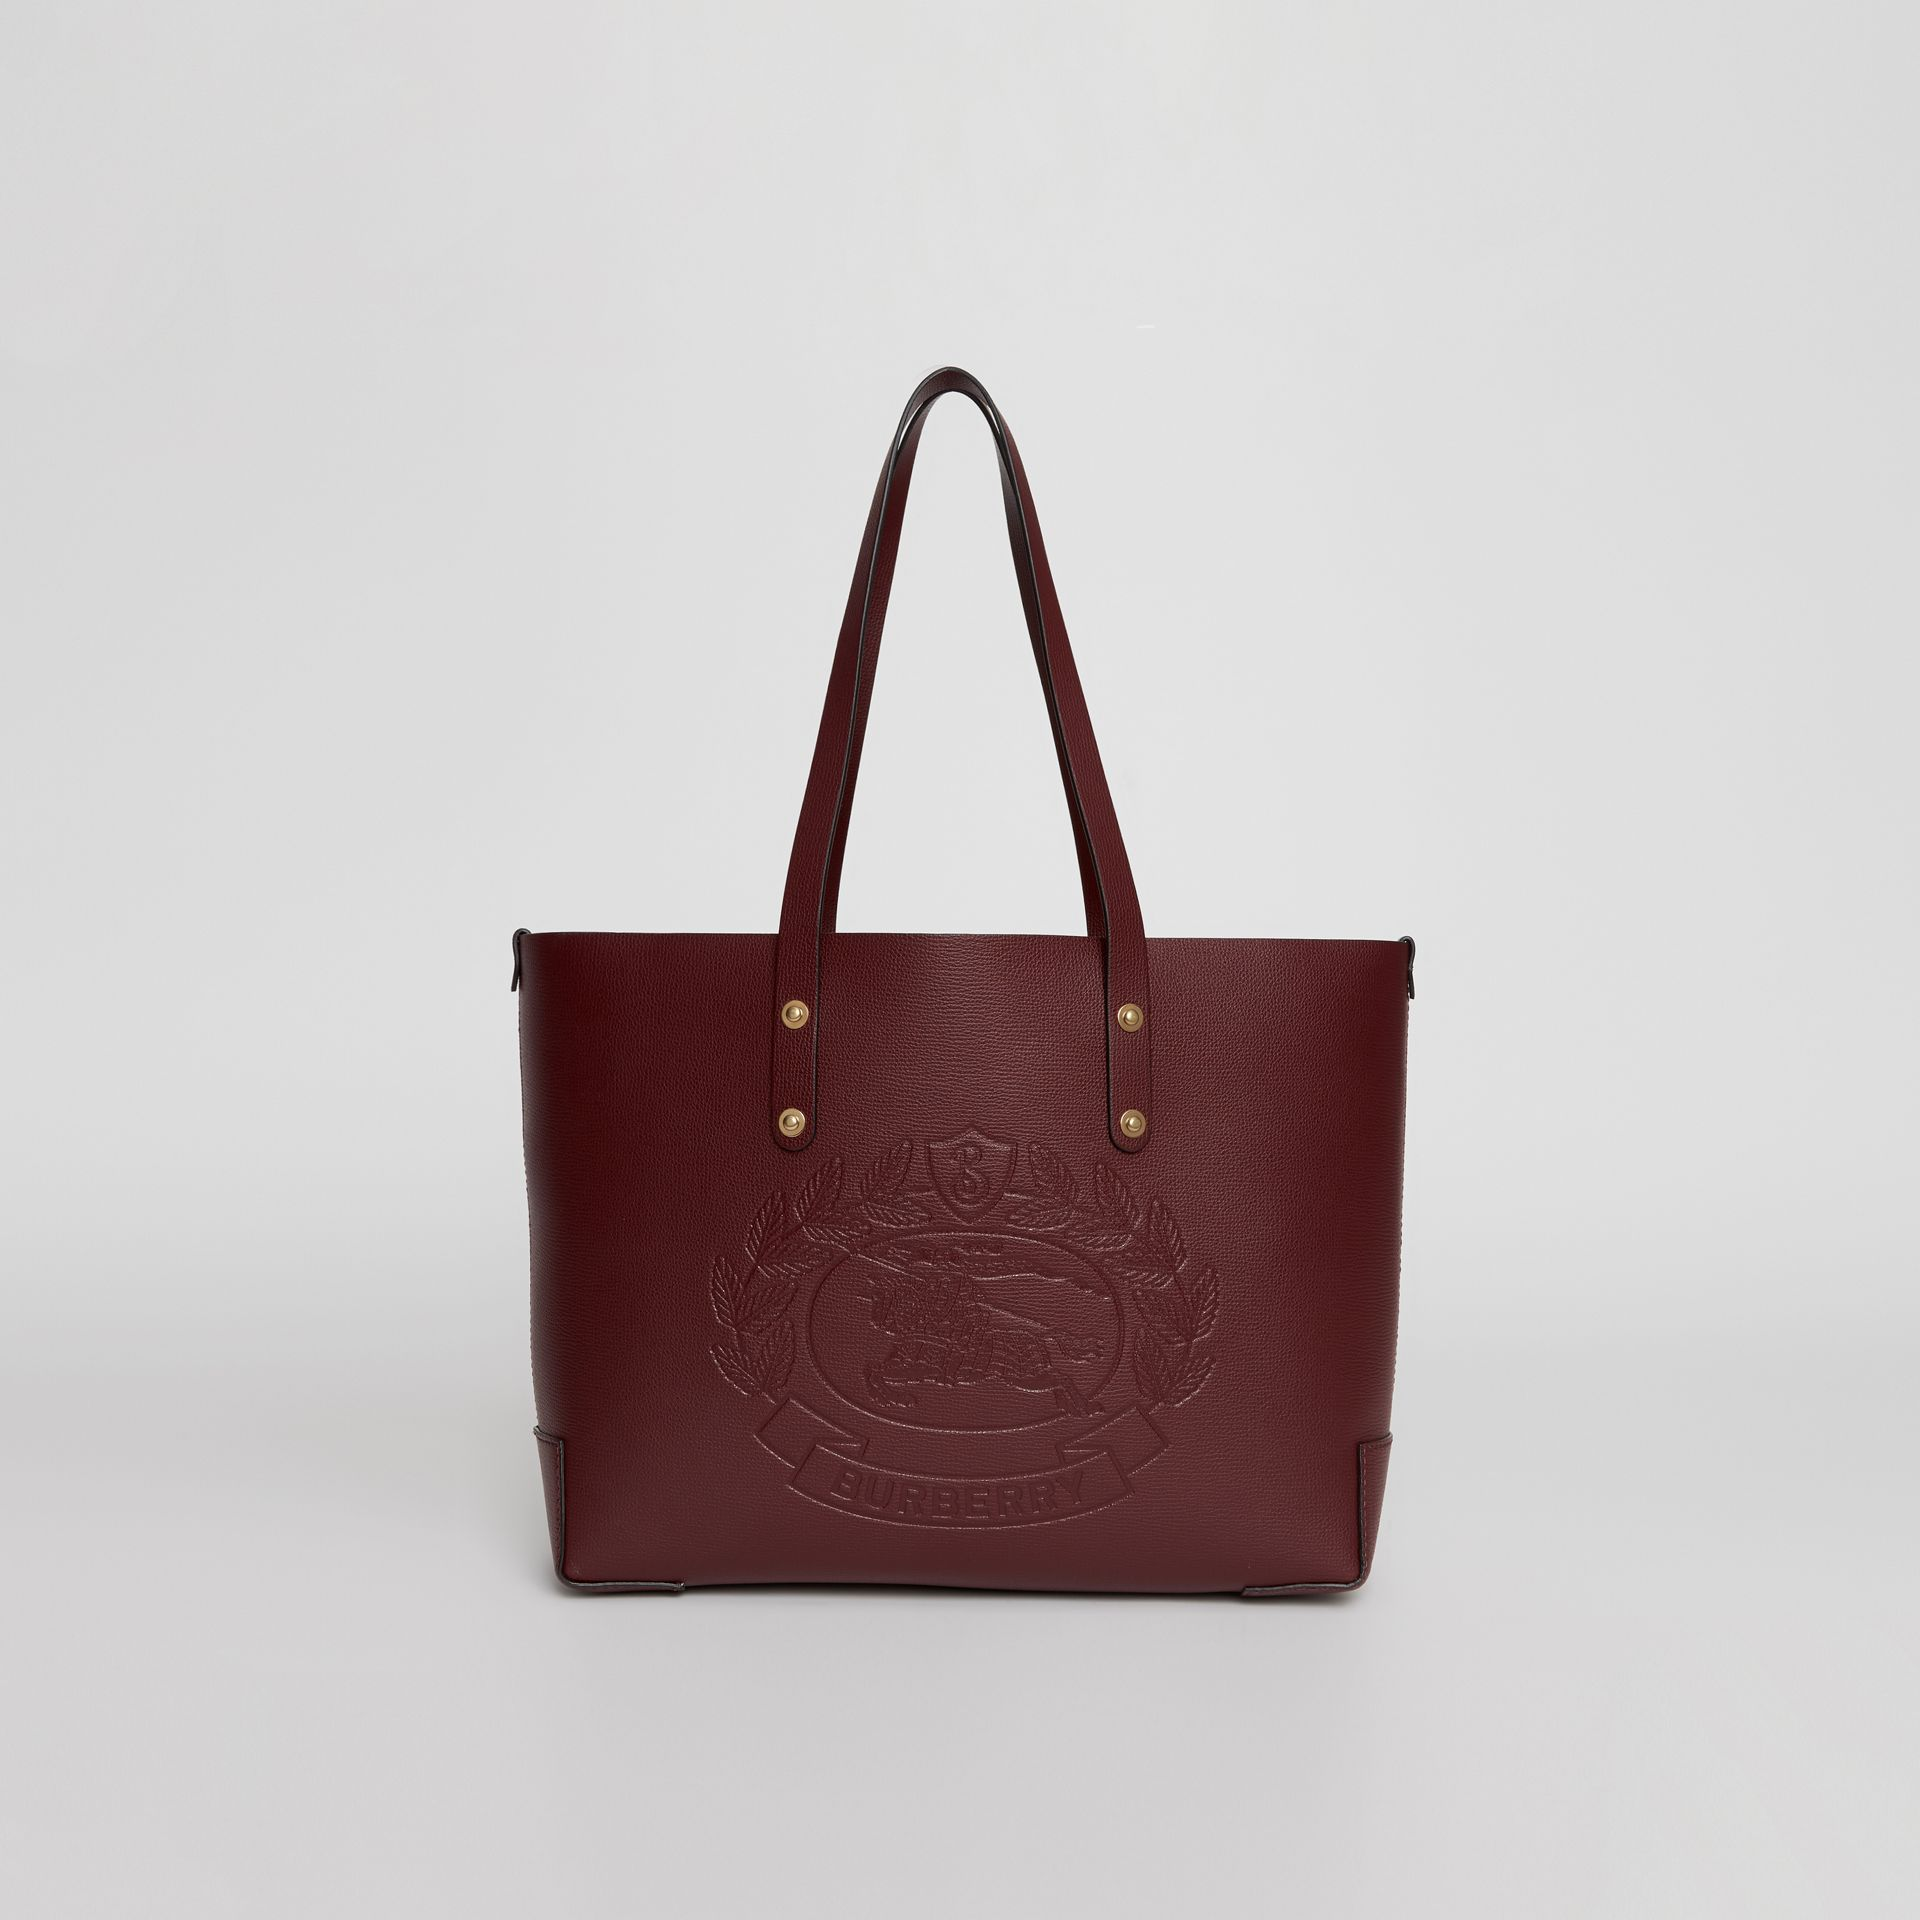 Small Embossed Crest Leather Tote in Burgundy - Women | Burberry - gallery image 0